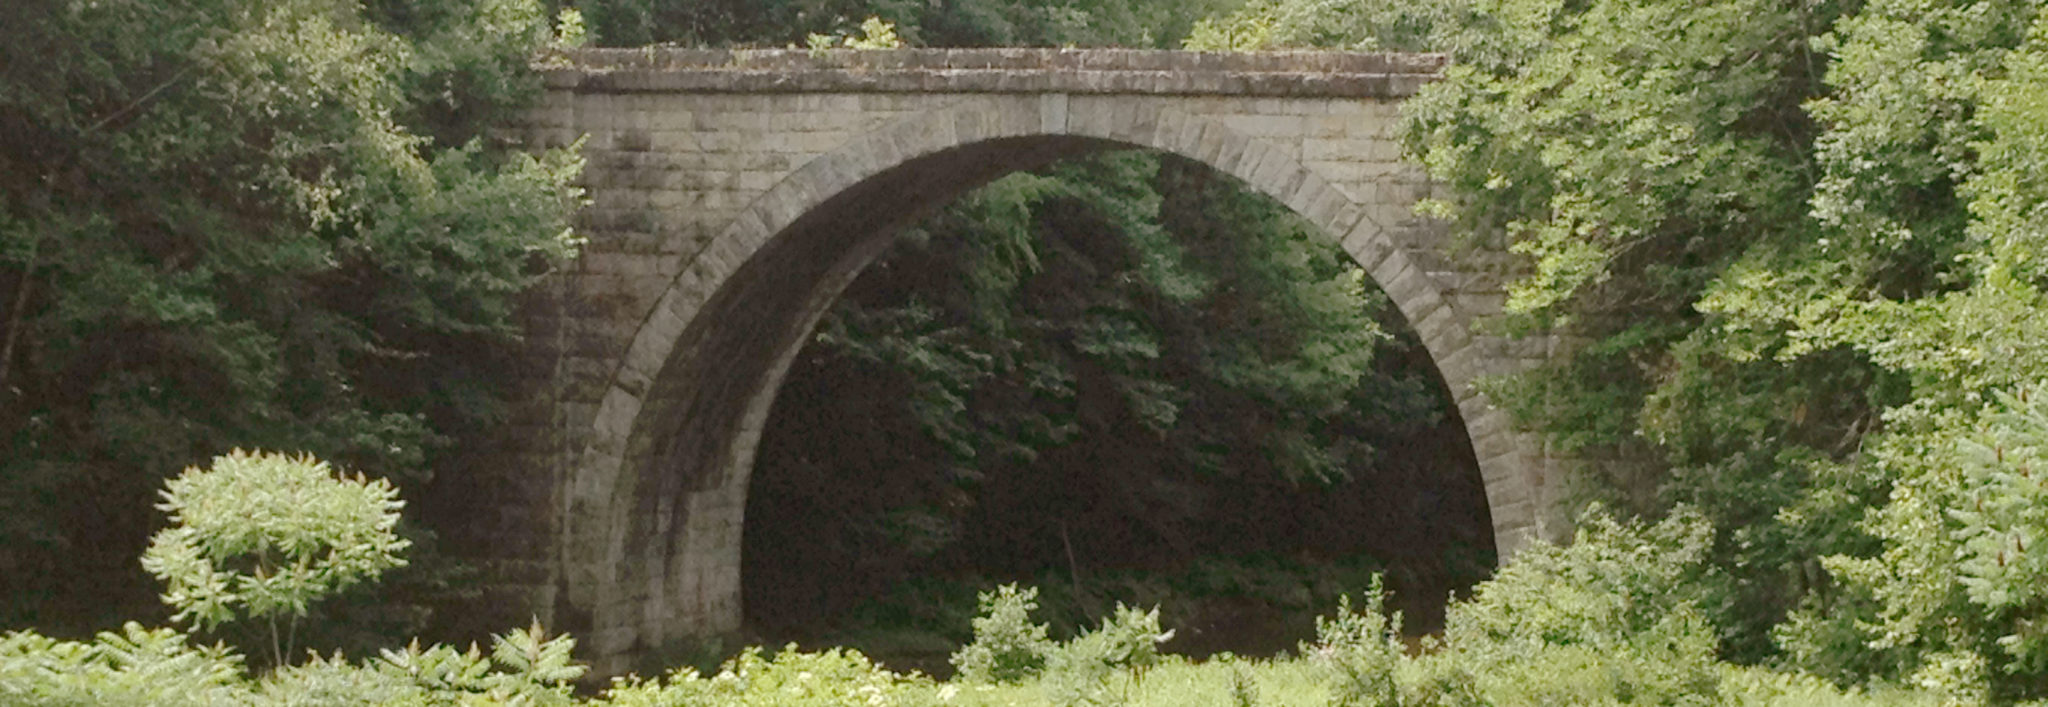 Learn About The Amazing Dry Stone Bridges And Perhaps A Few Mortared Ones Of Southern New Hampshire